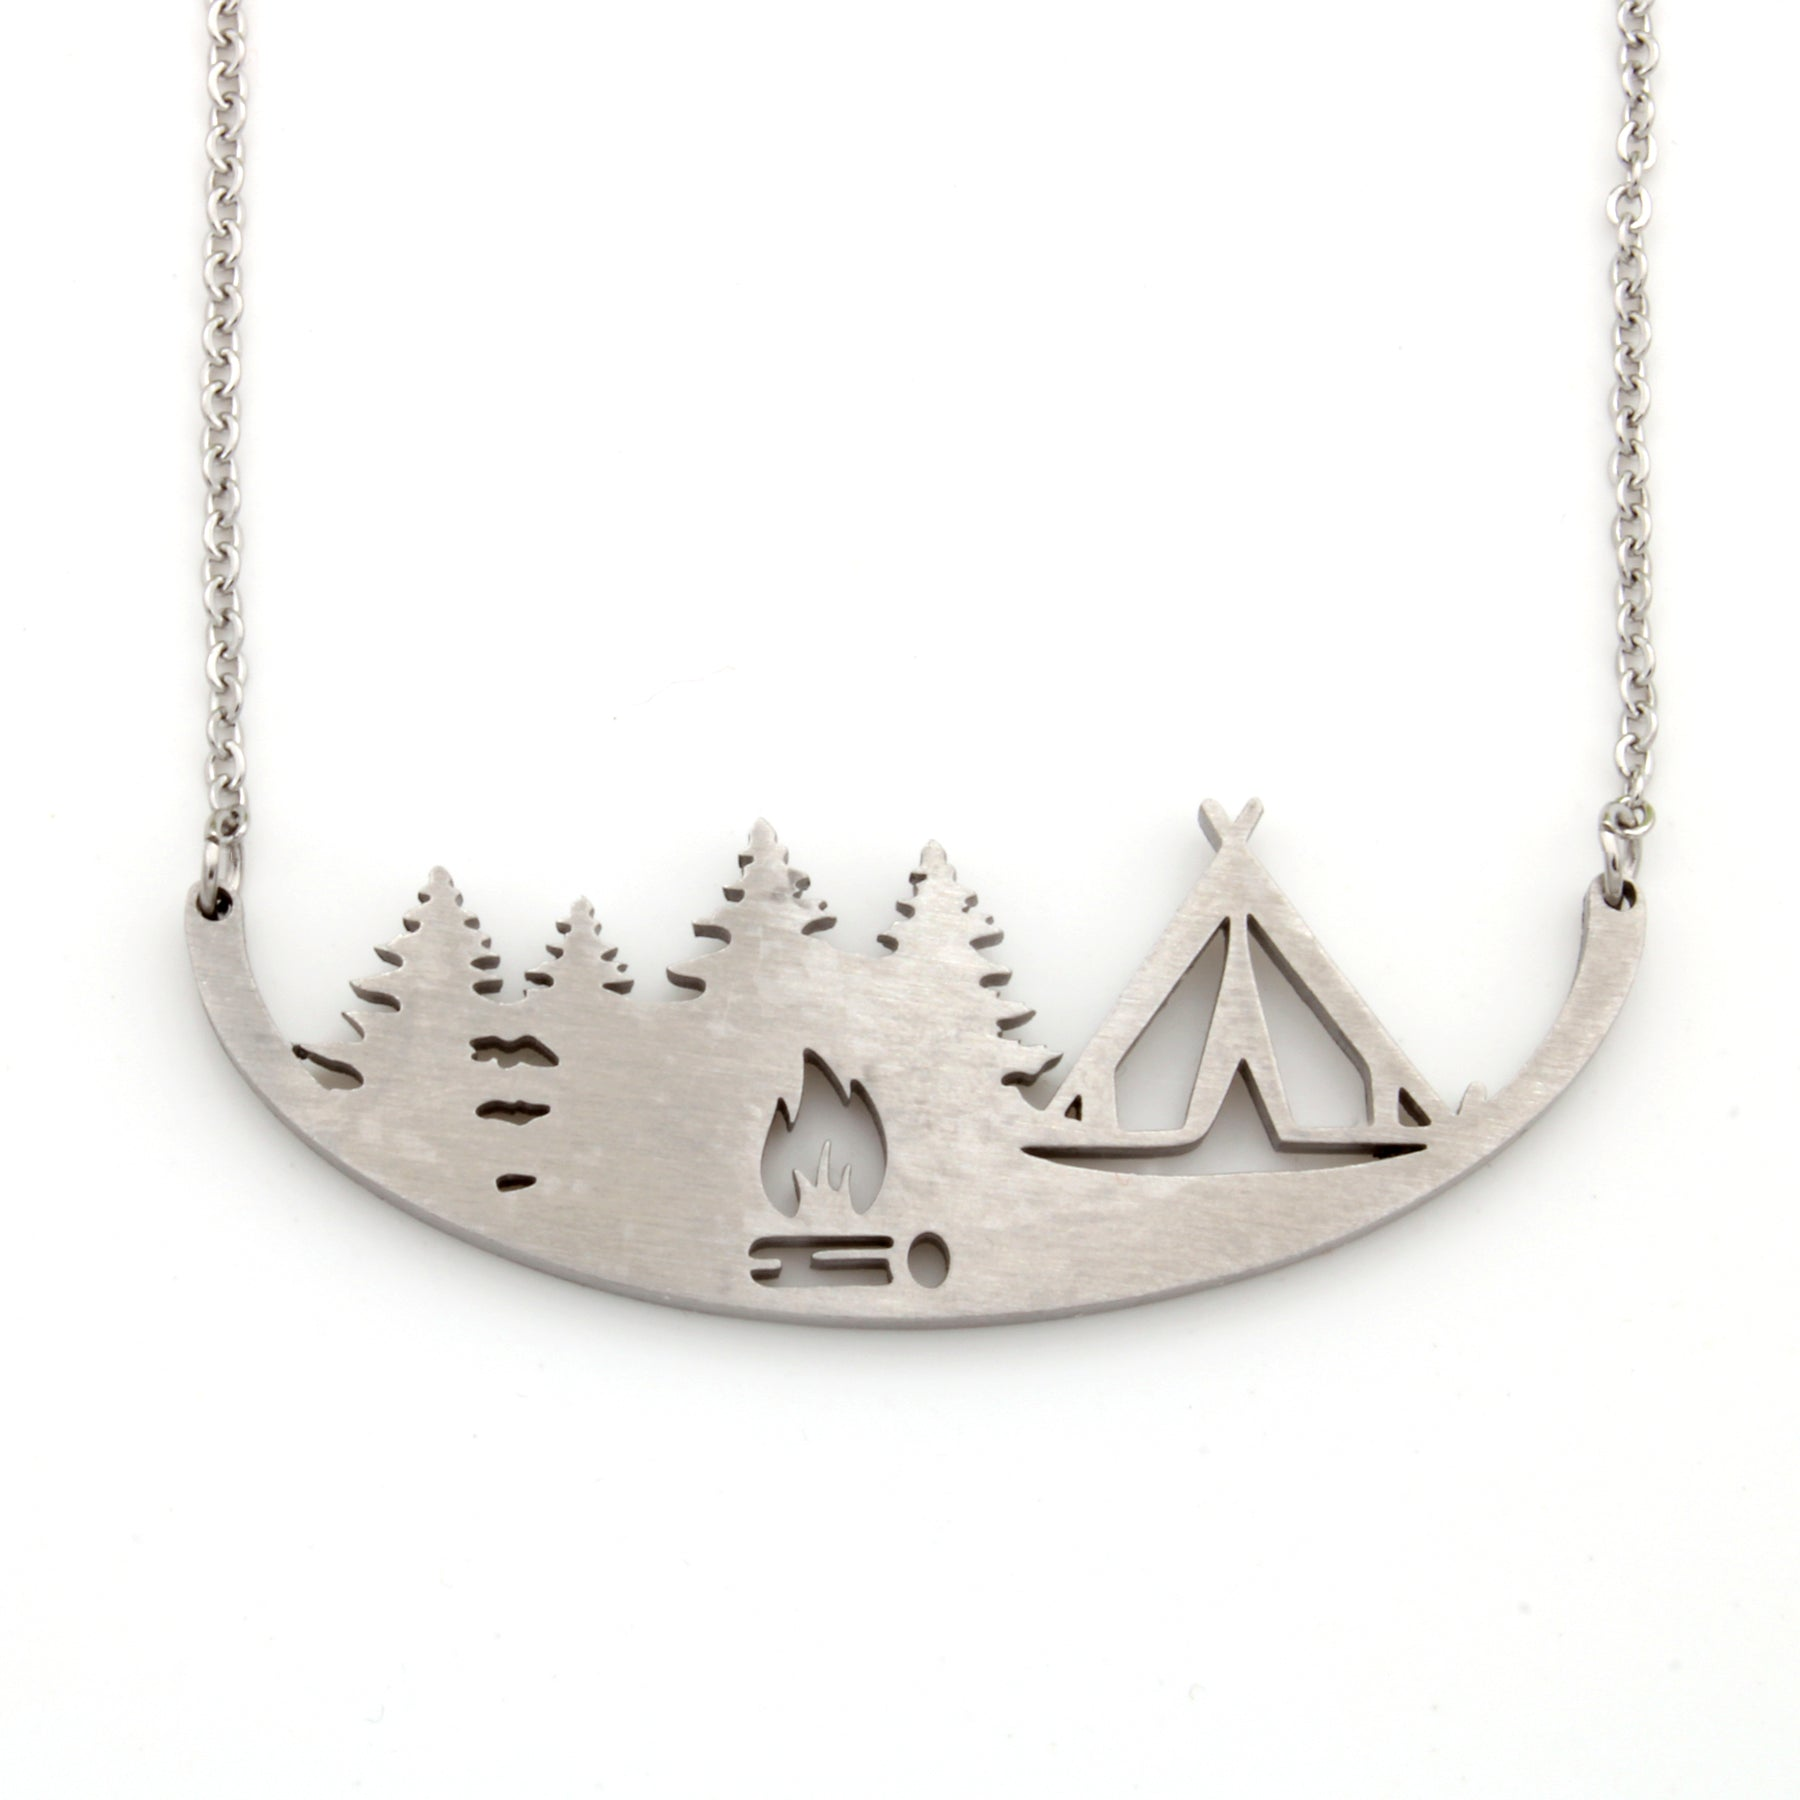 Stainless Steel Necklace - Tent